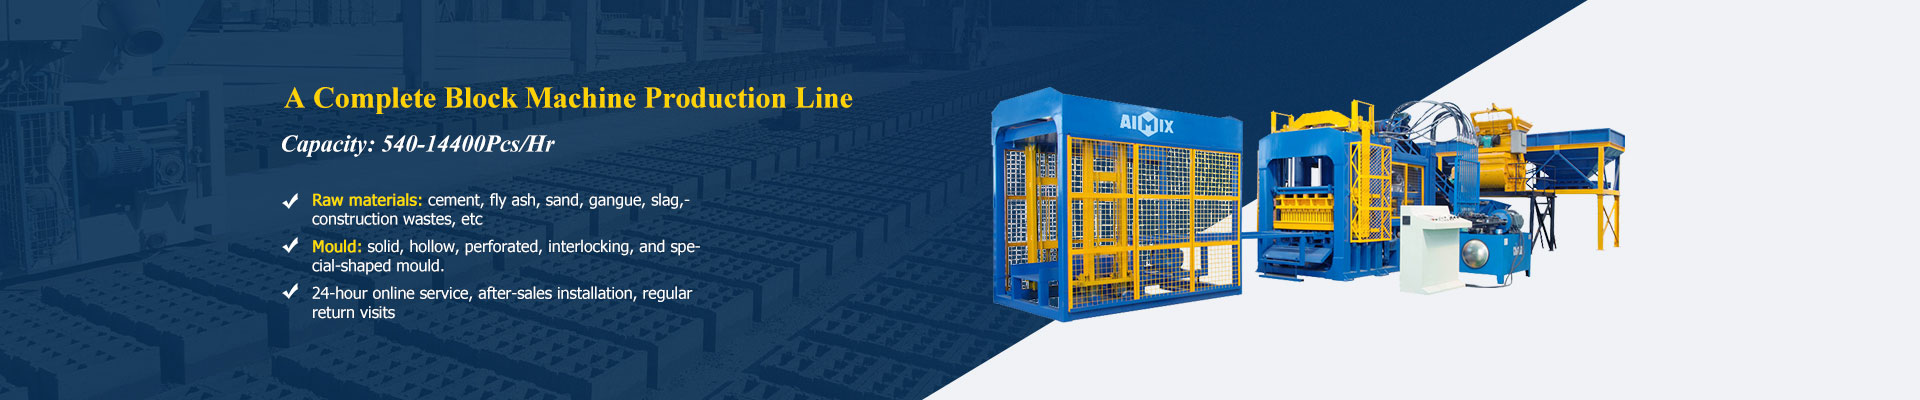 A complete block making machine production line